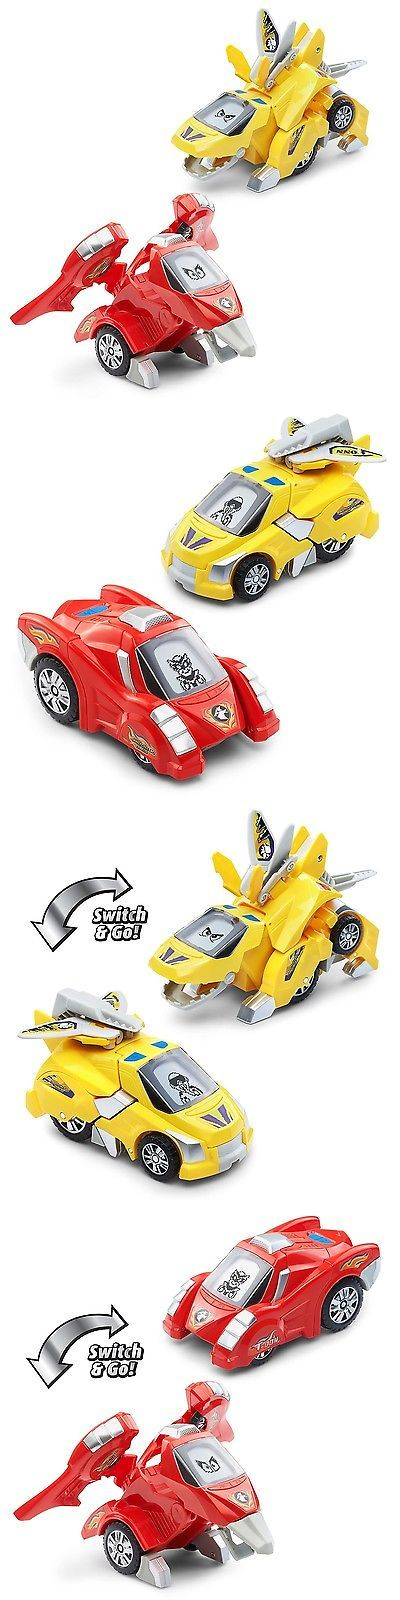 Mixed Lots 49018: Vtech Switch And Go Dinos - Animated Dinos 2-Pack With T-Don And Tonn -> BUY IT NOW ONLY: $300 on eBay!